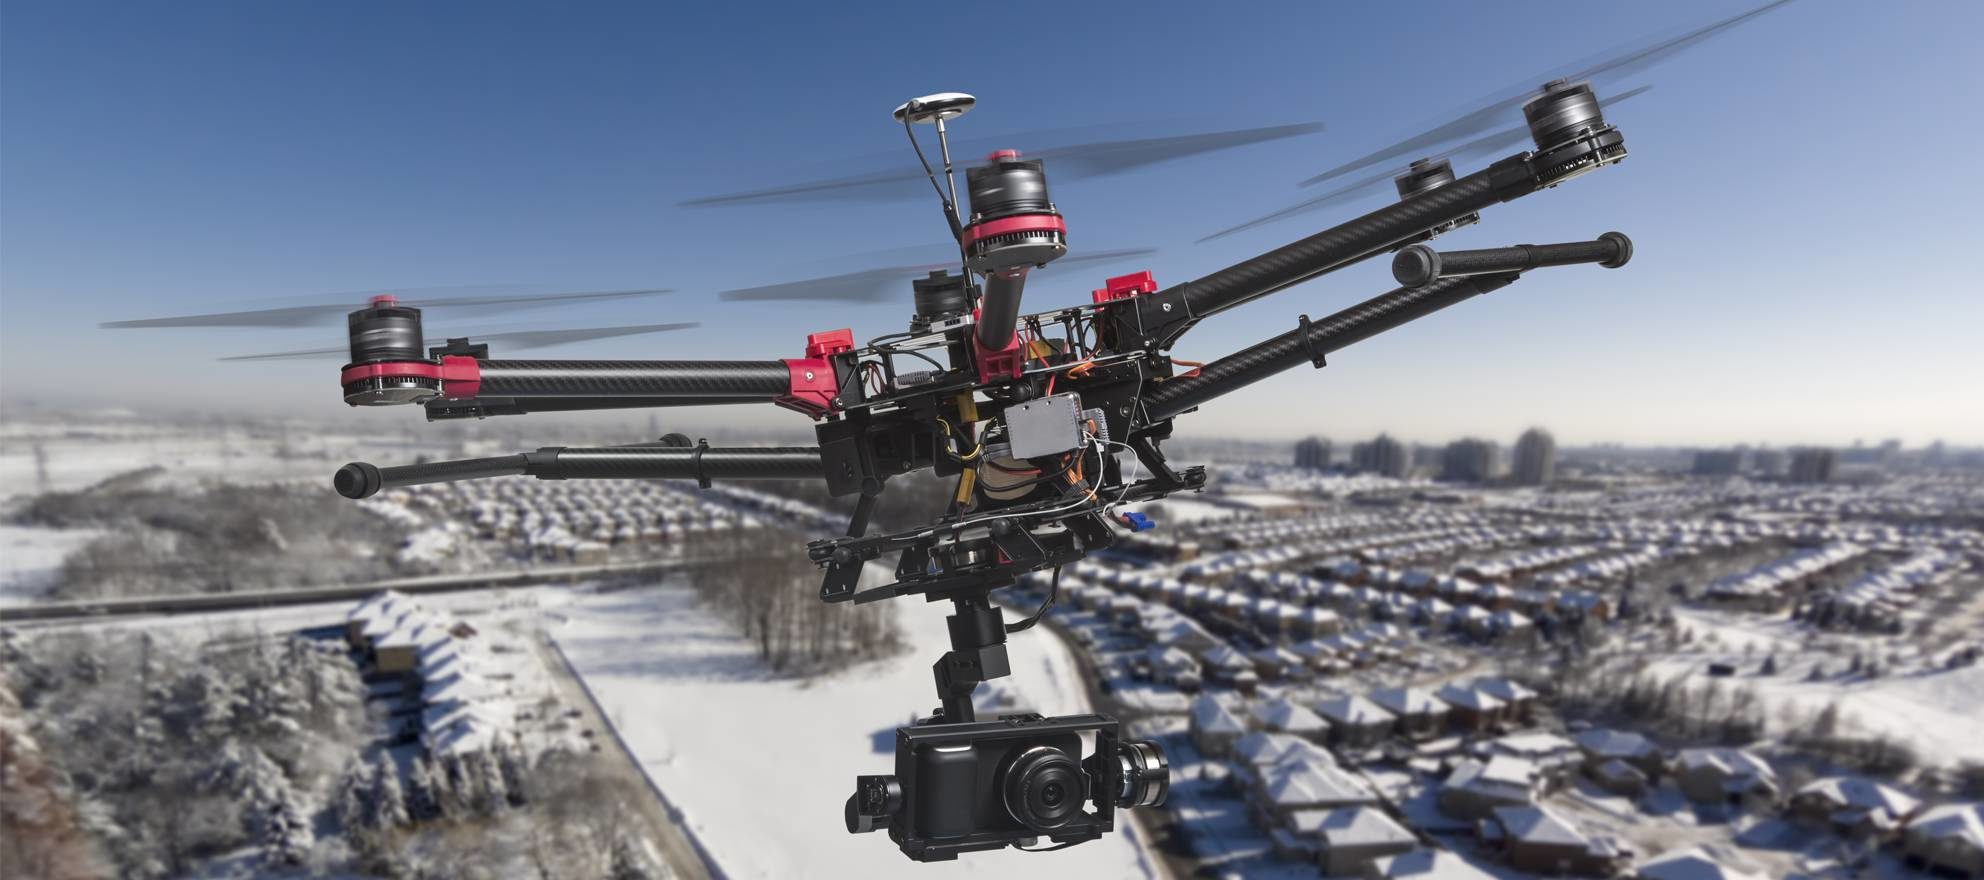 Hendrix secures drone exemption